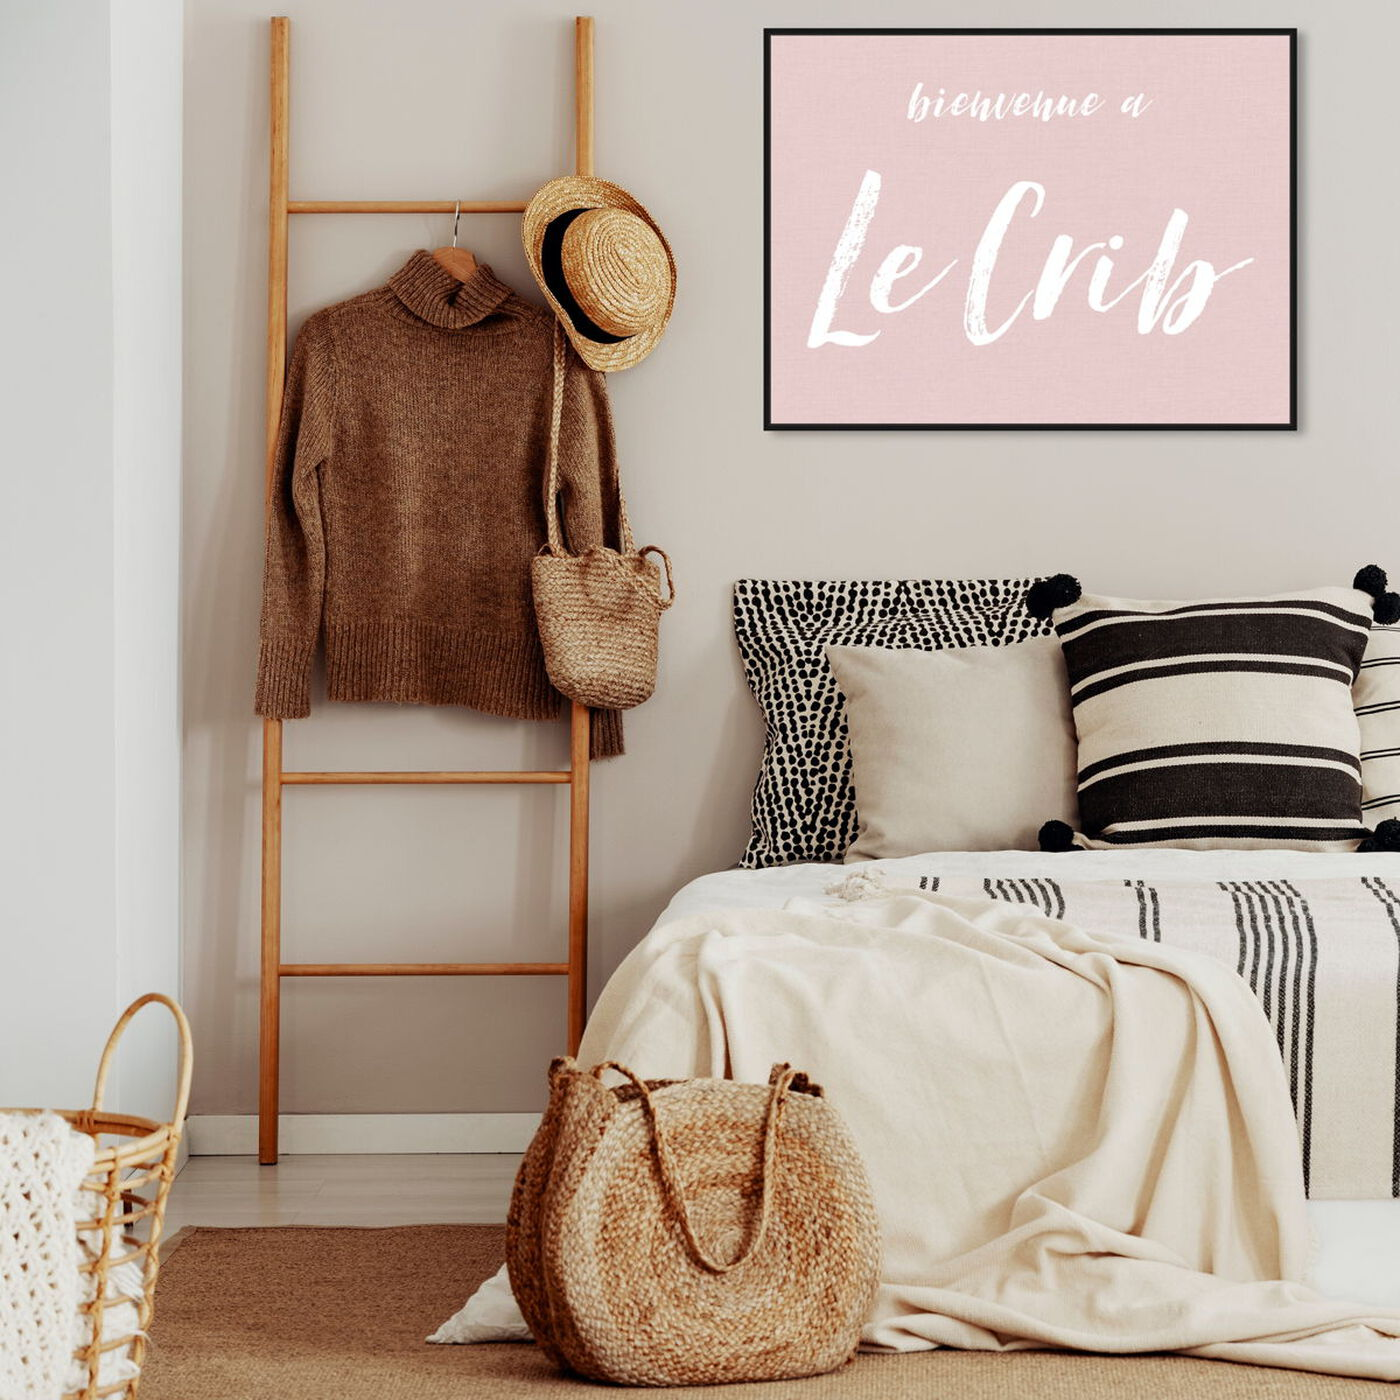 Hanging view of Le Crib featuring typography and quotes and travel quotes and sayings art.